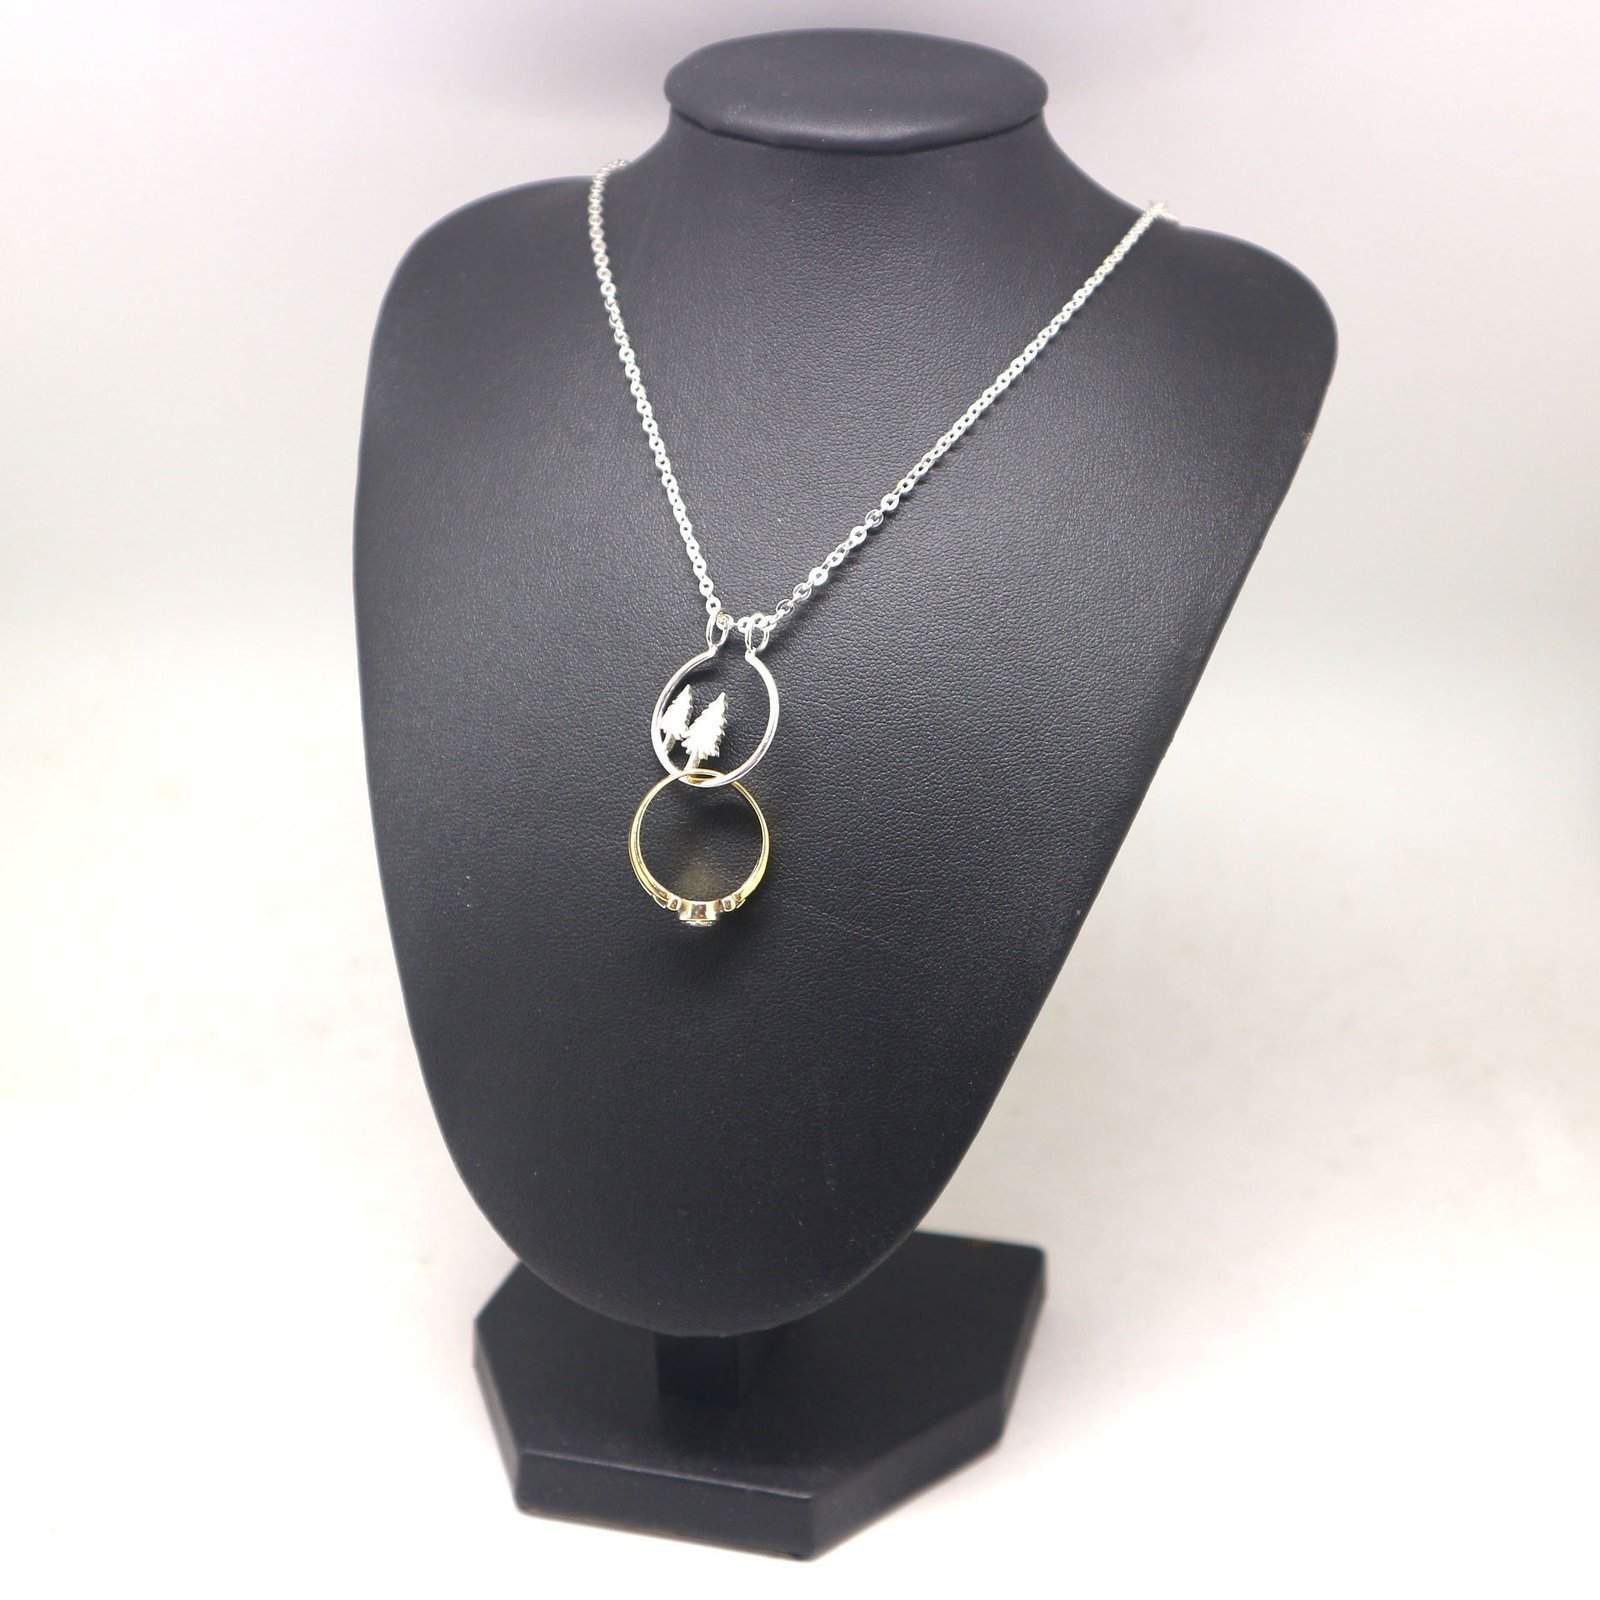 Silver Pine Tree Ring Holder Necklace image 6